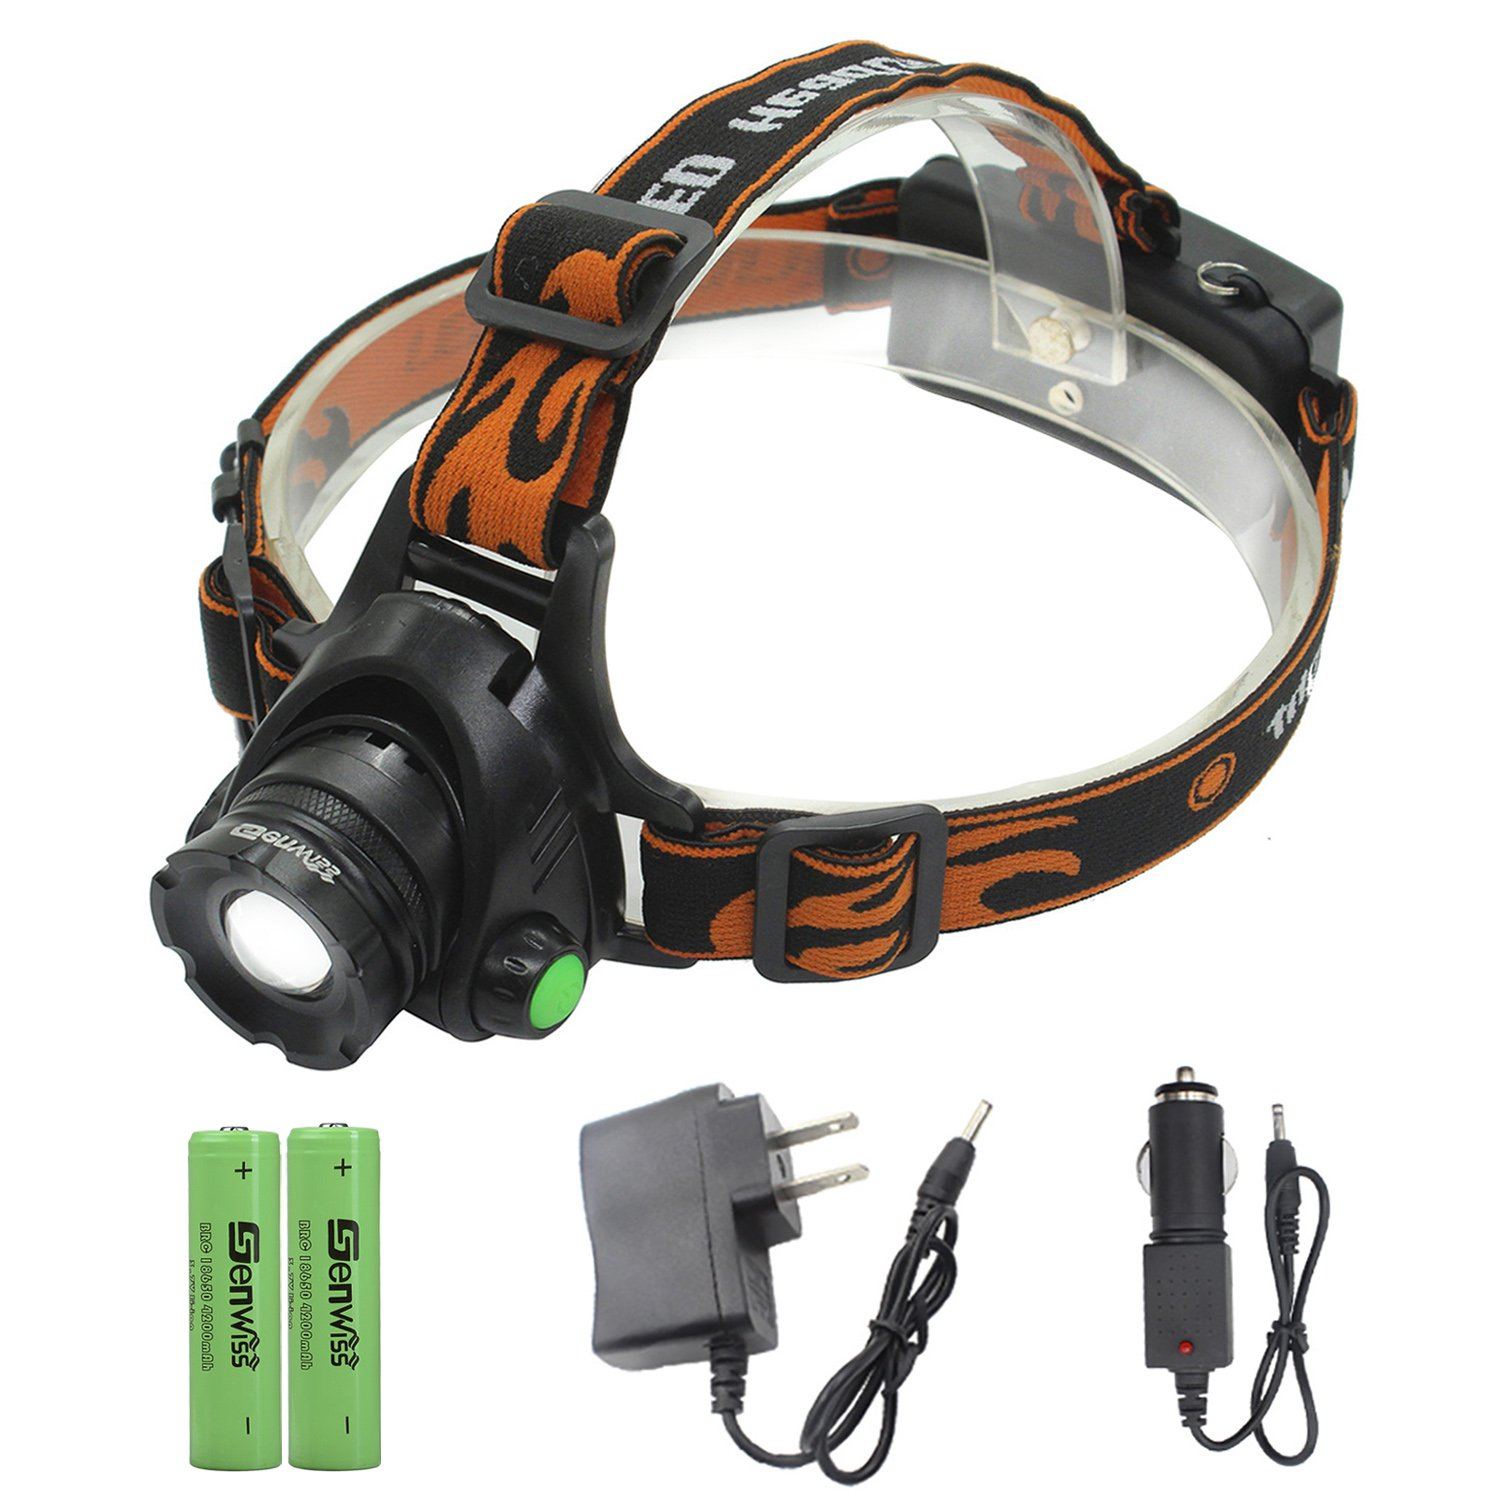 LED Headlamp Power Head Lamp - Genwiss 2000 Lumen XML T6 Headlight Waterproof Flashlight Zoomable Light Torch with 2 x 18650 Rechargeable Batteries, Car Charger, Wall Charger for Camping Biking